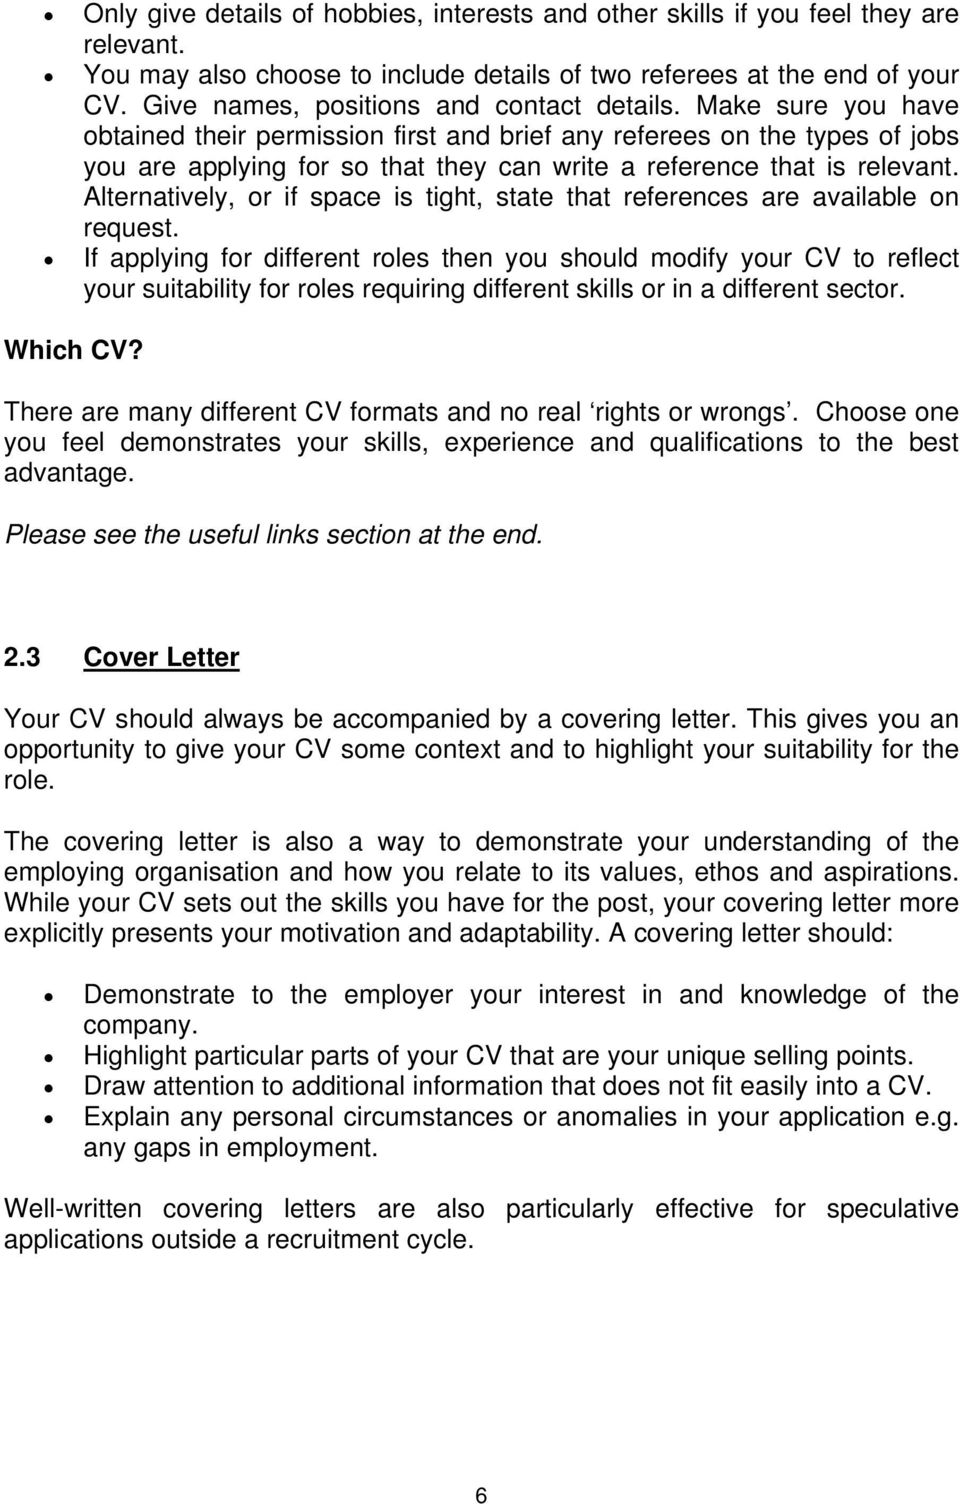 Make sure you have obtained their permission first and brief any referees on the types of jobs you are applying for so that they can write a reference that is relevant.